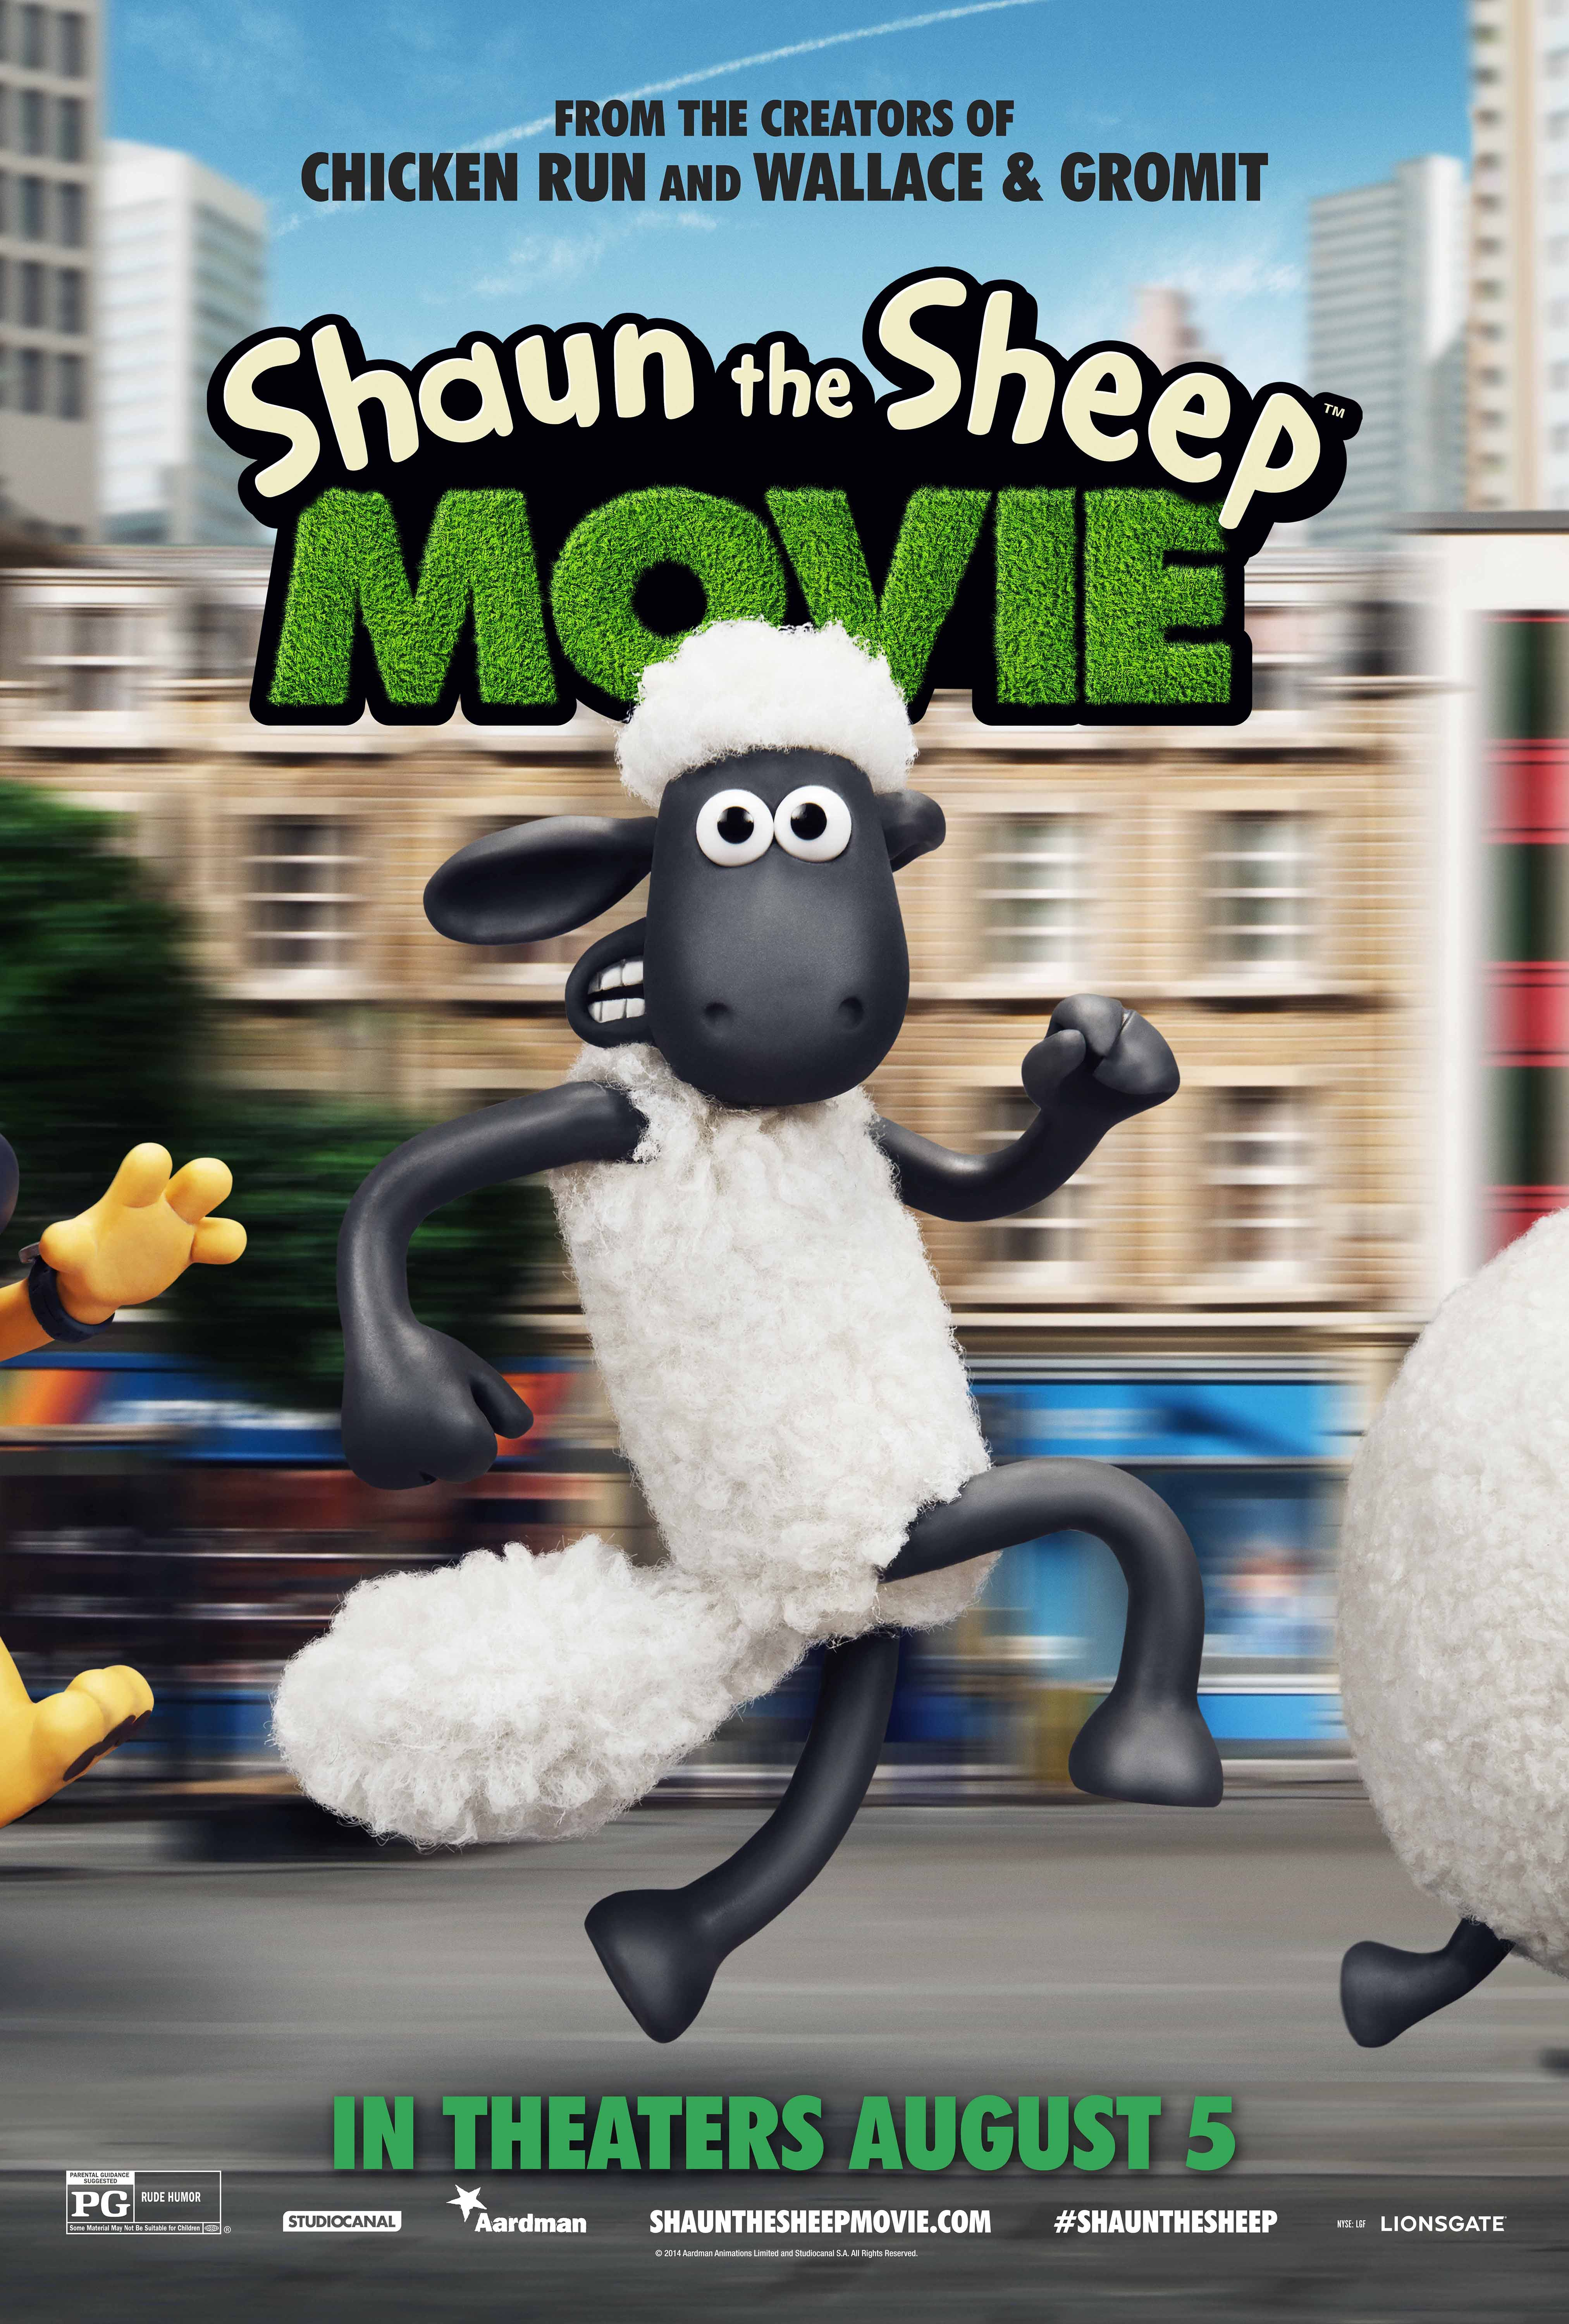 Shaun the Sheep Movie Poster, in theaters Aug. 5th